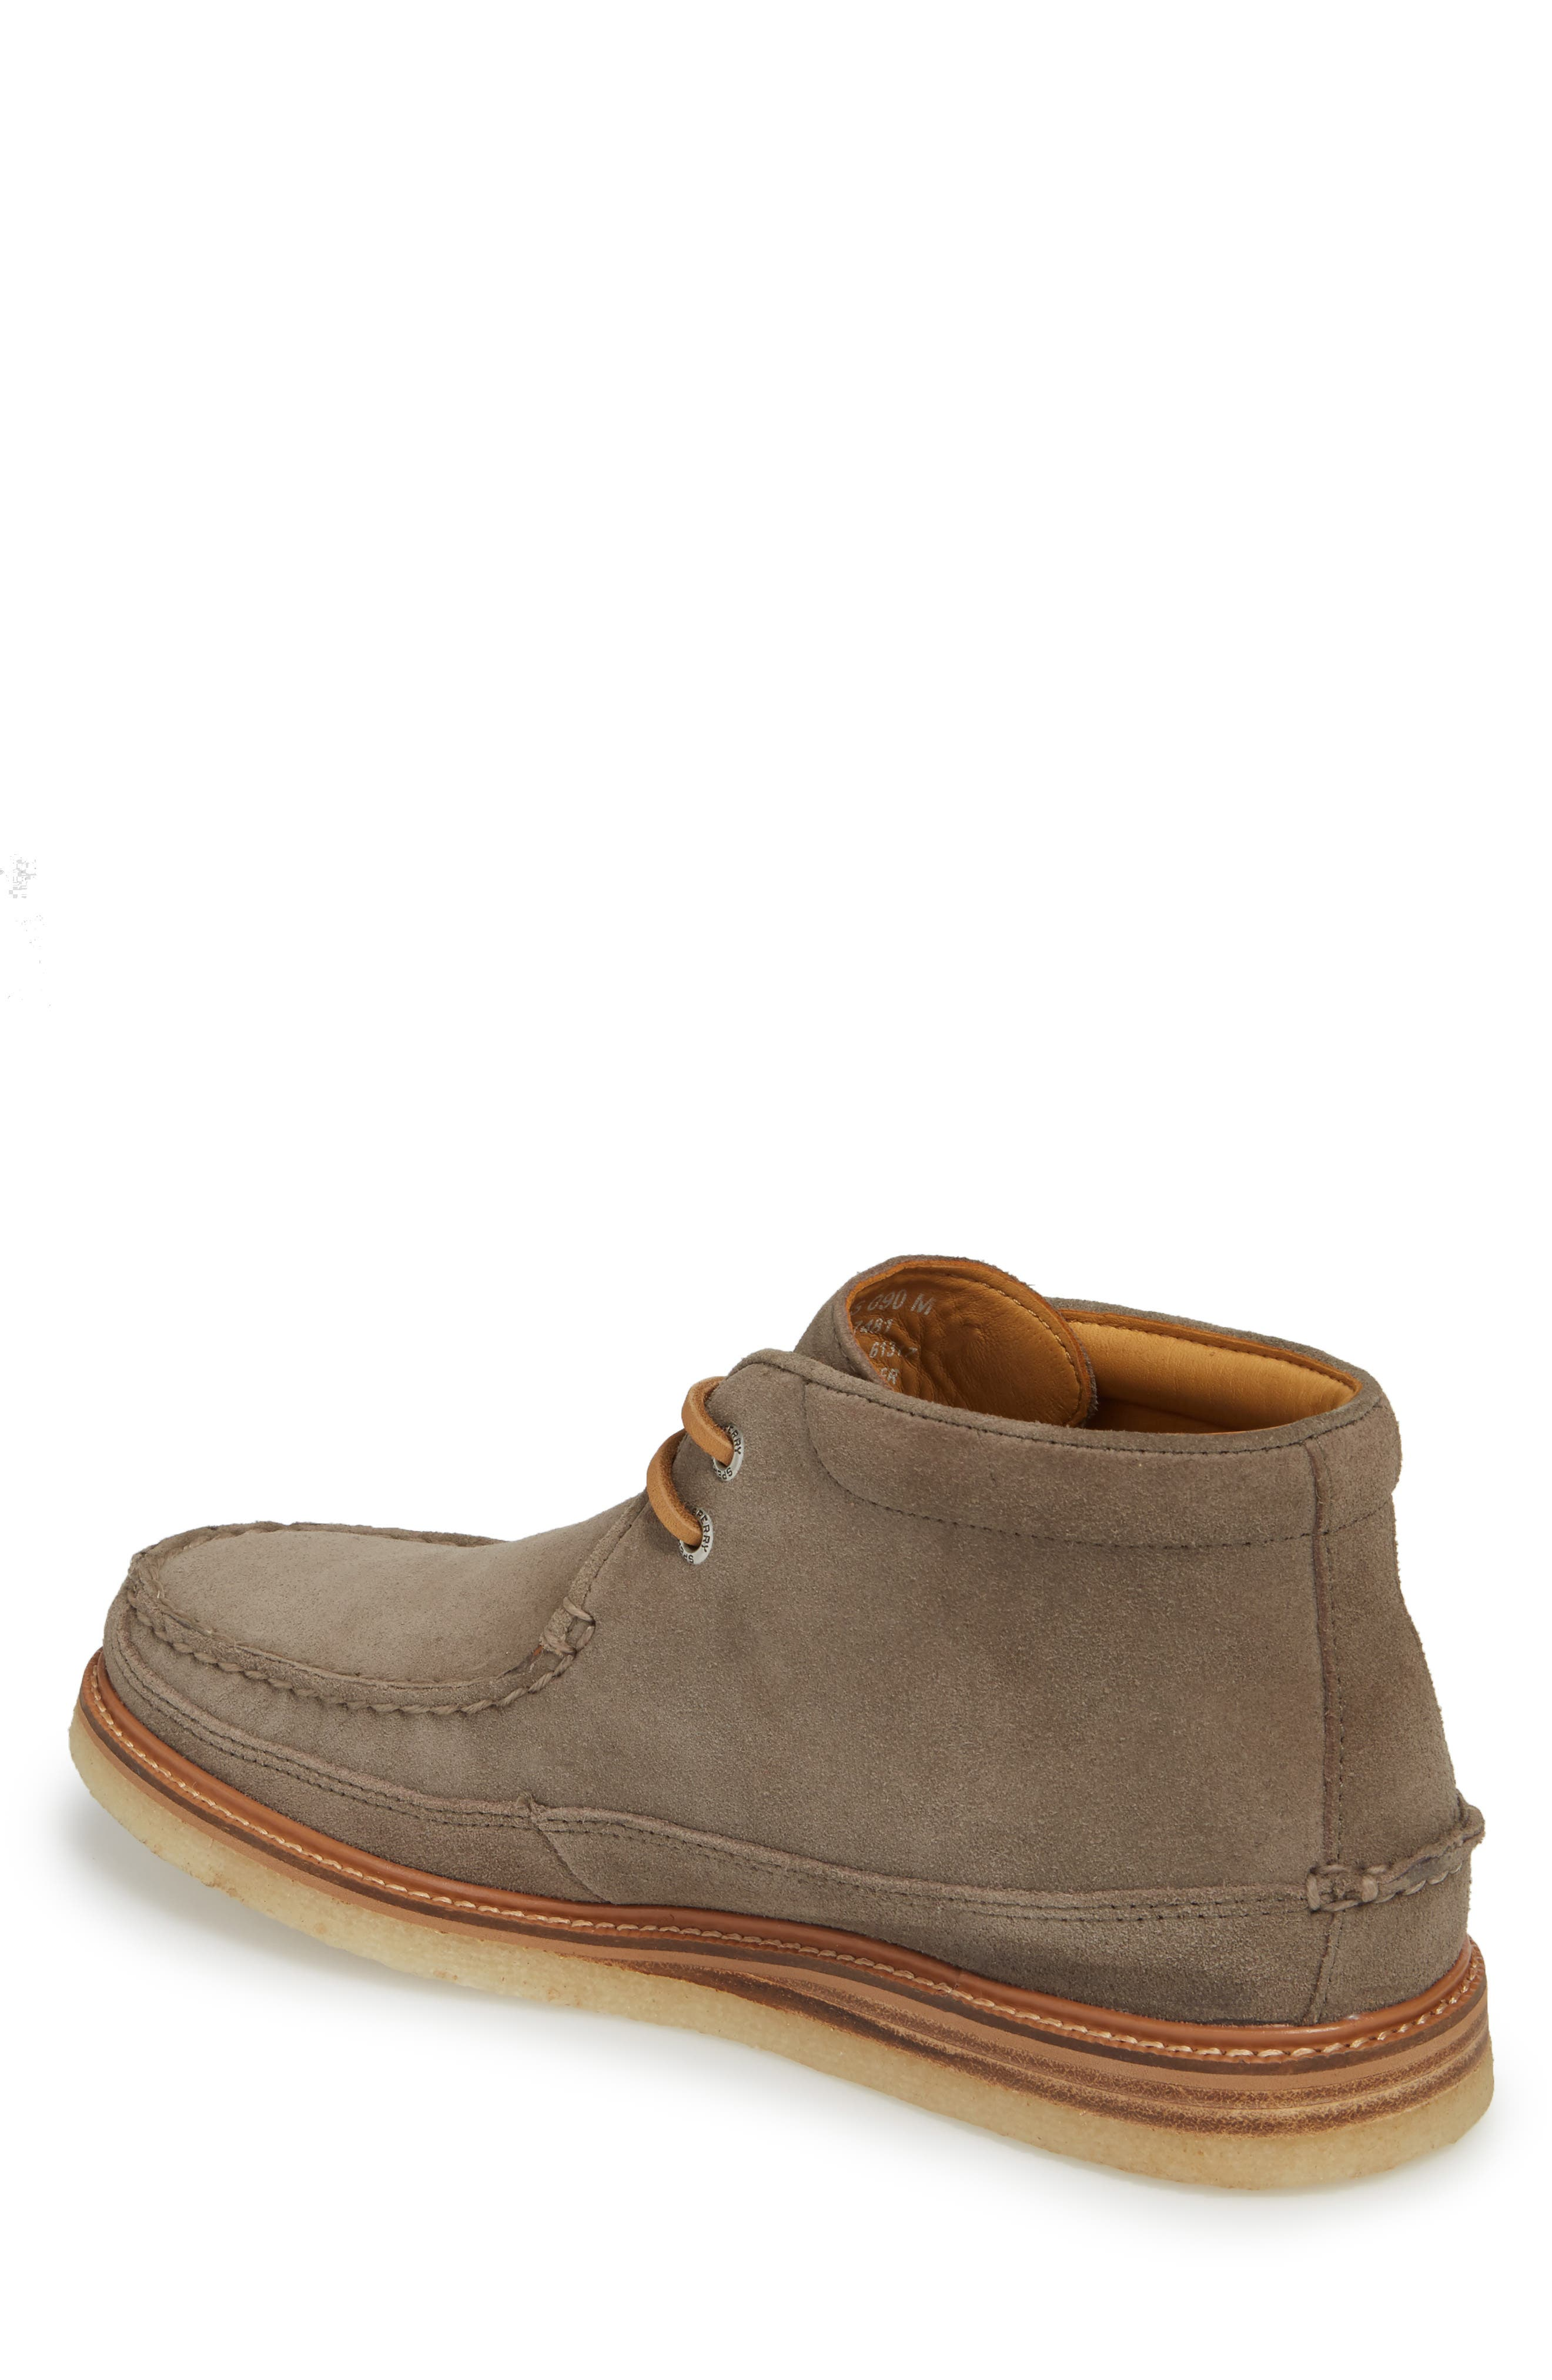 Gold Cup Chukka Boot,                             Alternate thumbnail 2, color,                             Taupe Grey Leather/ Suede